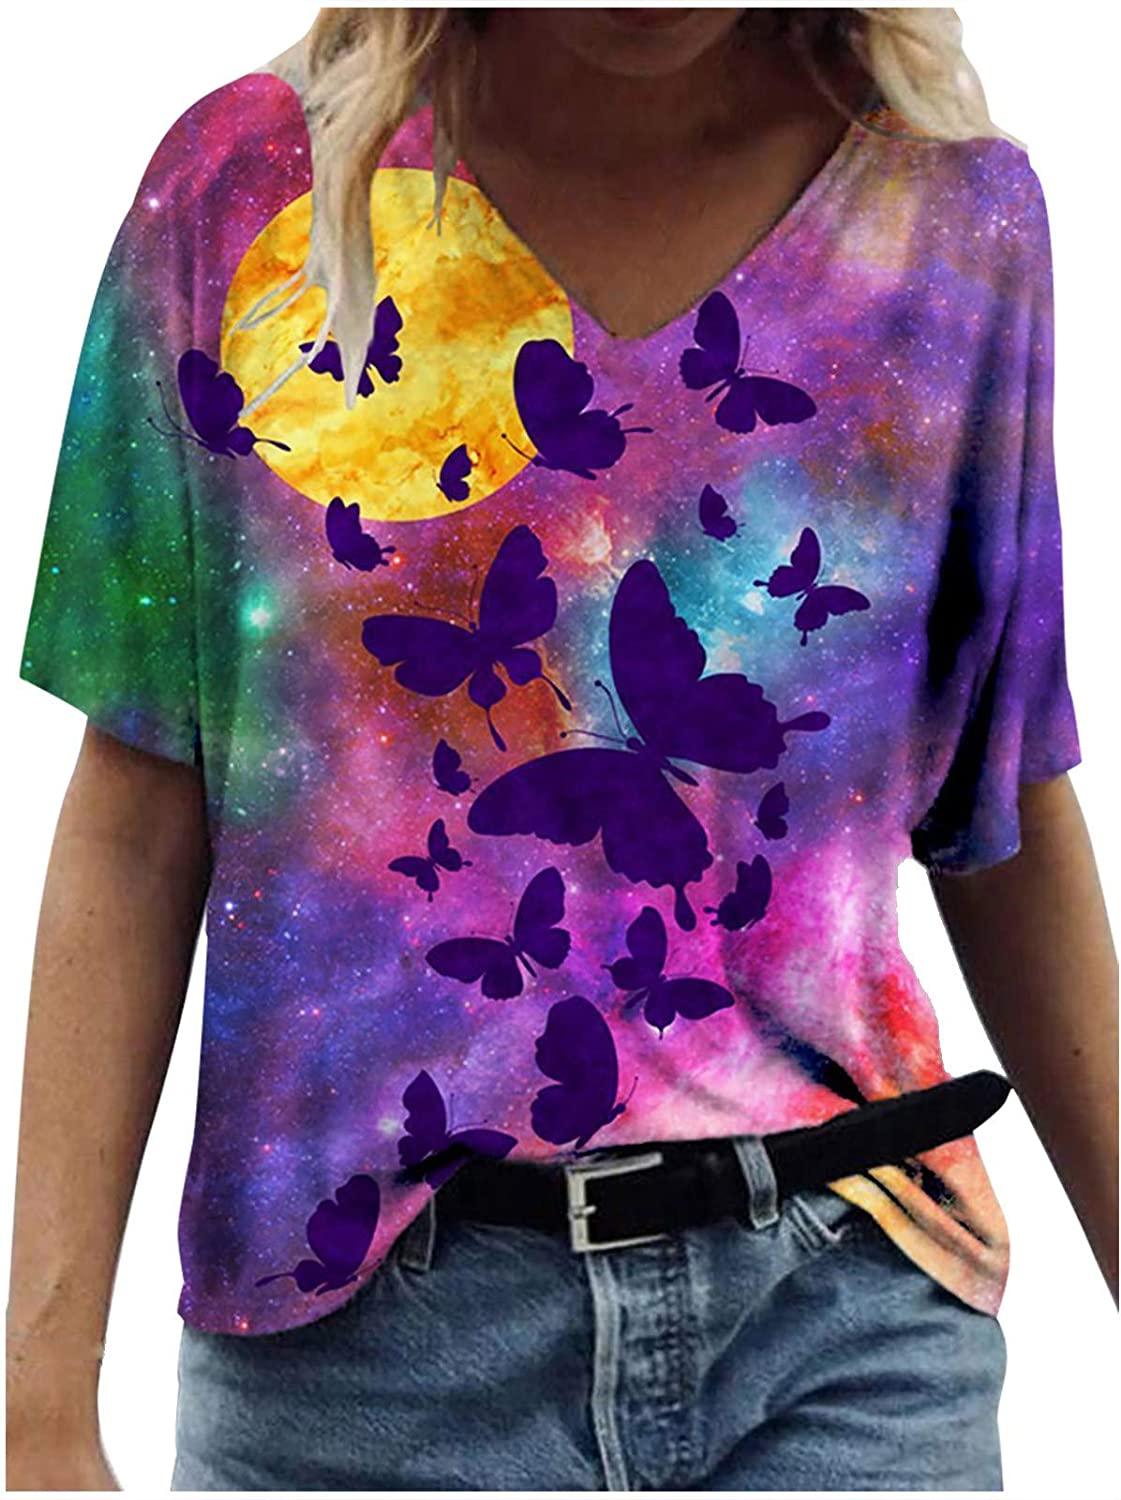 FABIURT Summer Tops for Women,Womens Fashion Gardient Color Printed Short Sleeve V Neck T Shirts Casual Tie Dye Blouses